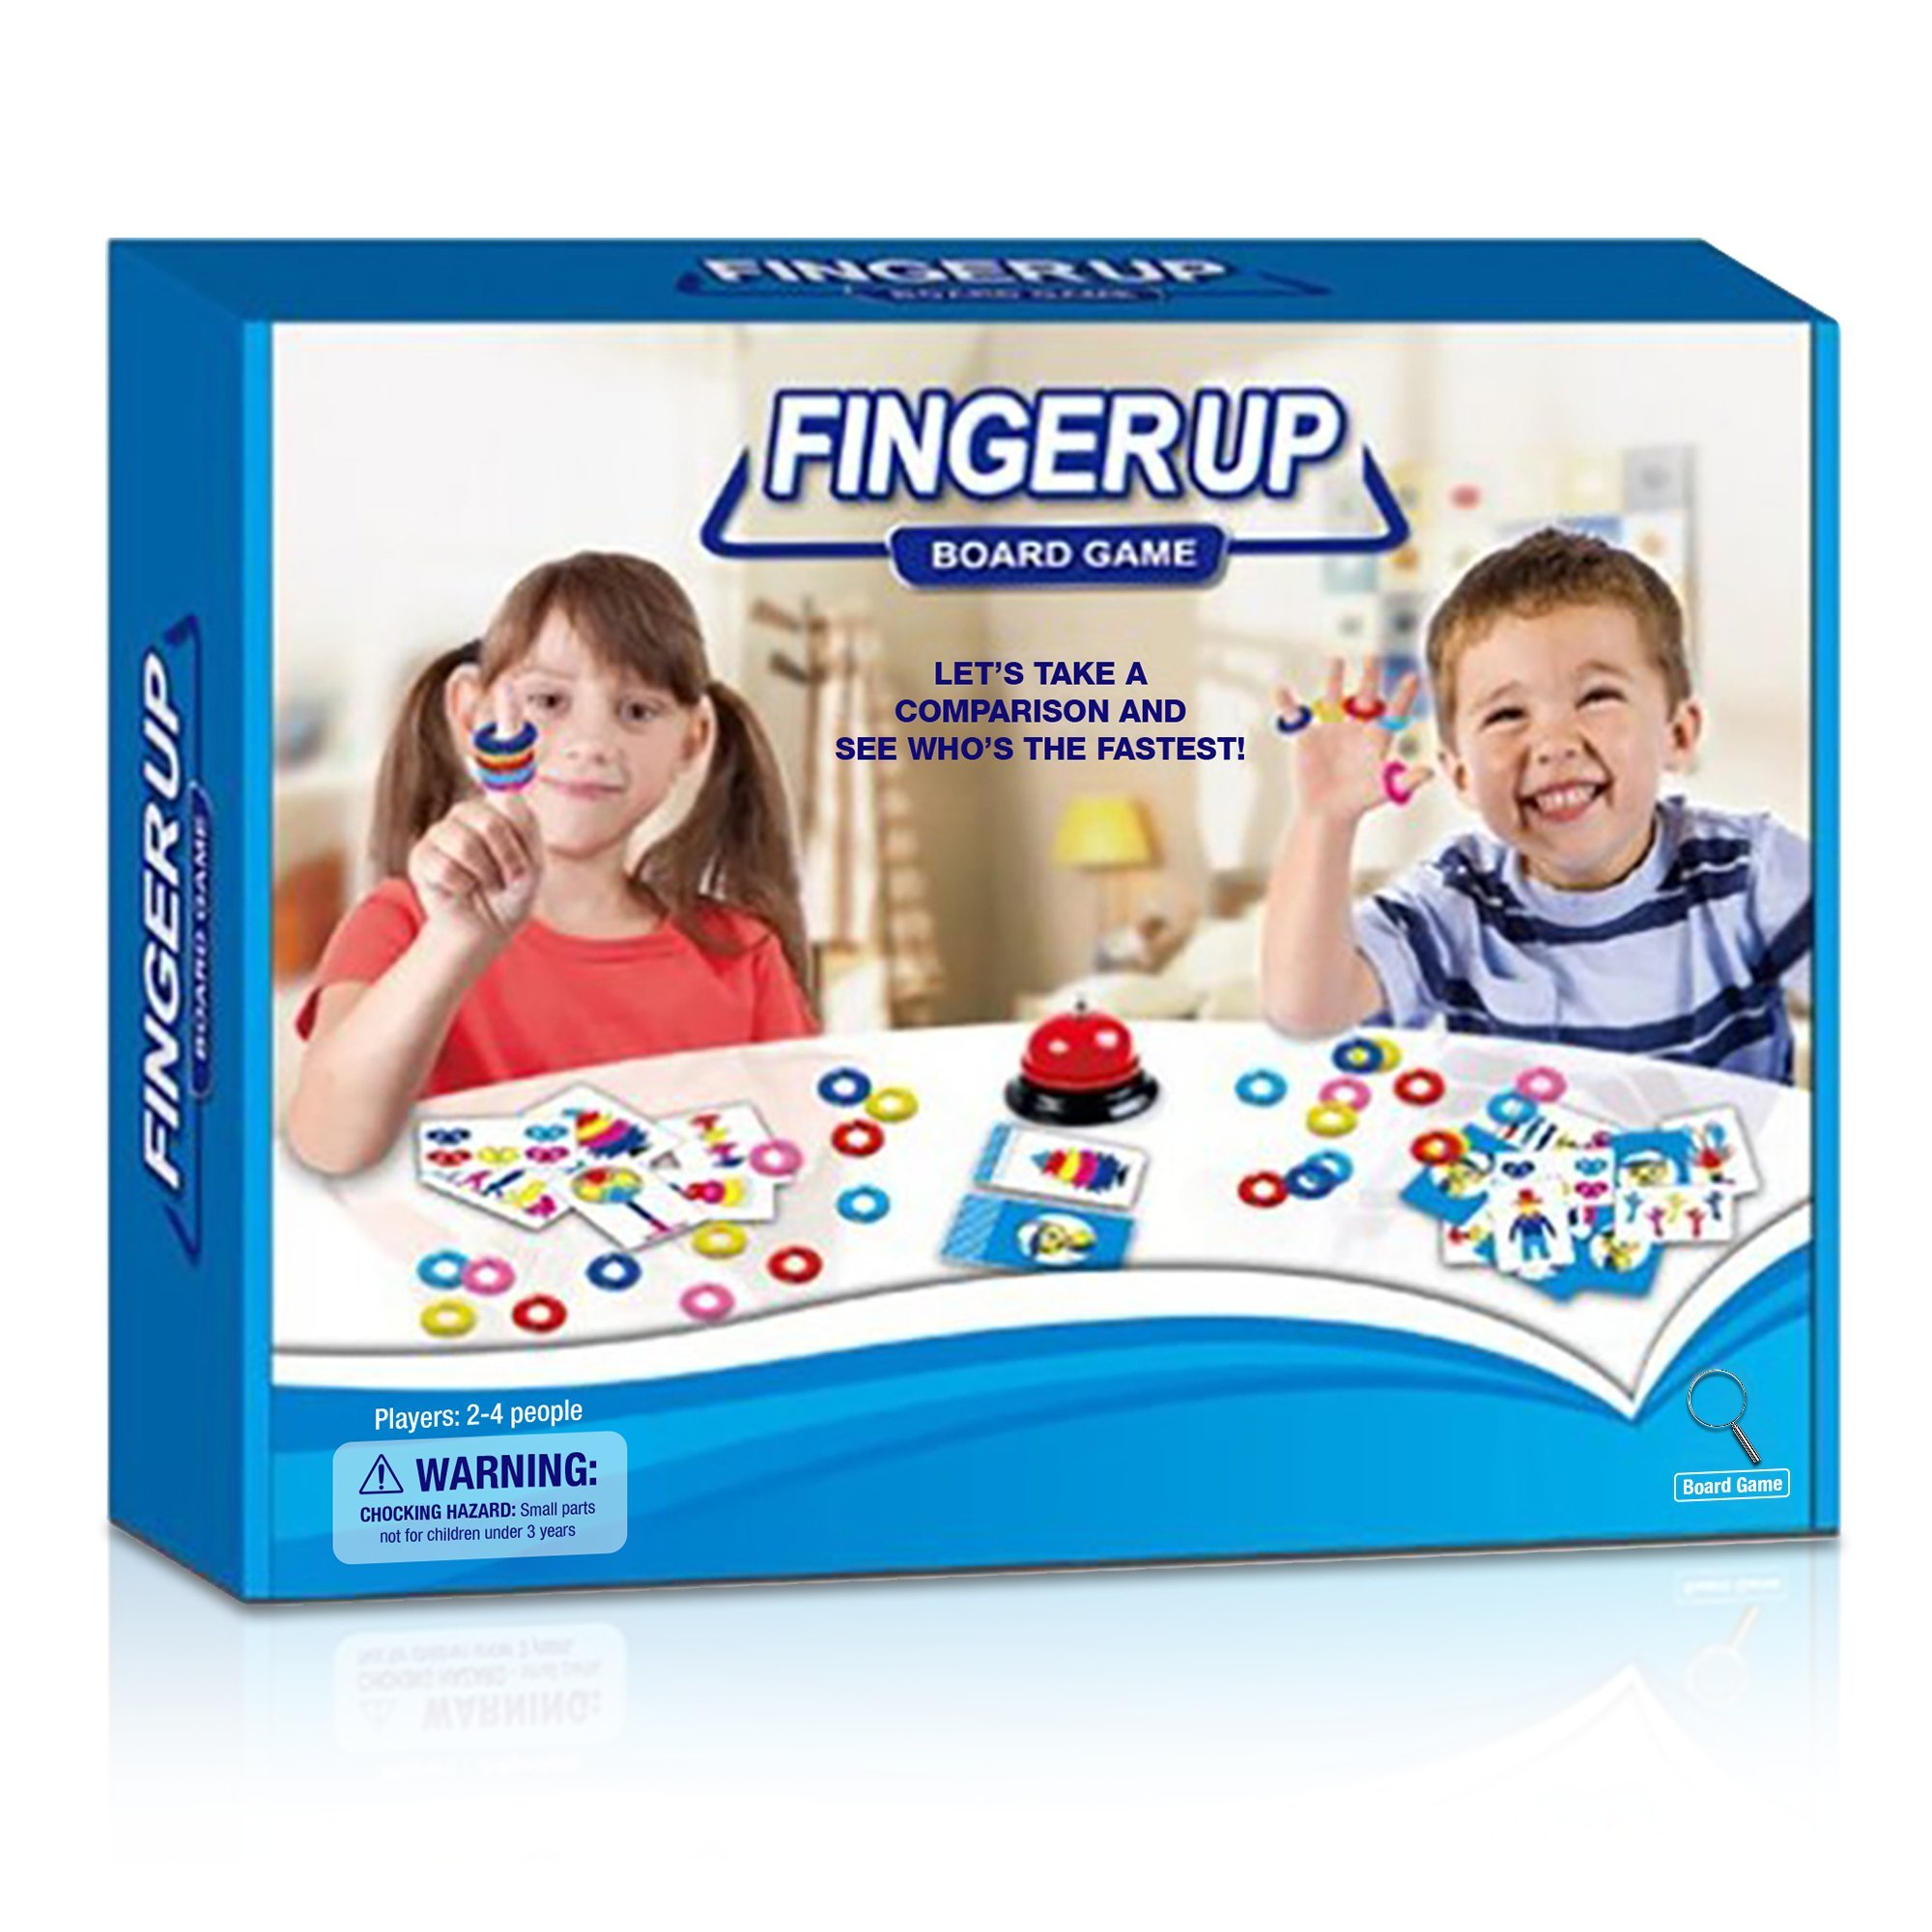 Gamie Finger Up Color Matching Game for Kids by Fun and Interactive Mind Card Game   Great Educational Learning Tool   Color Recognition Game   Cool Party Activity/ Educative Gift for Boys and Girls